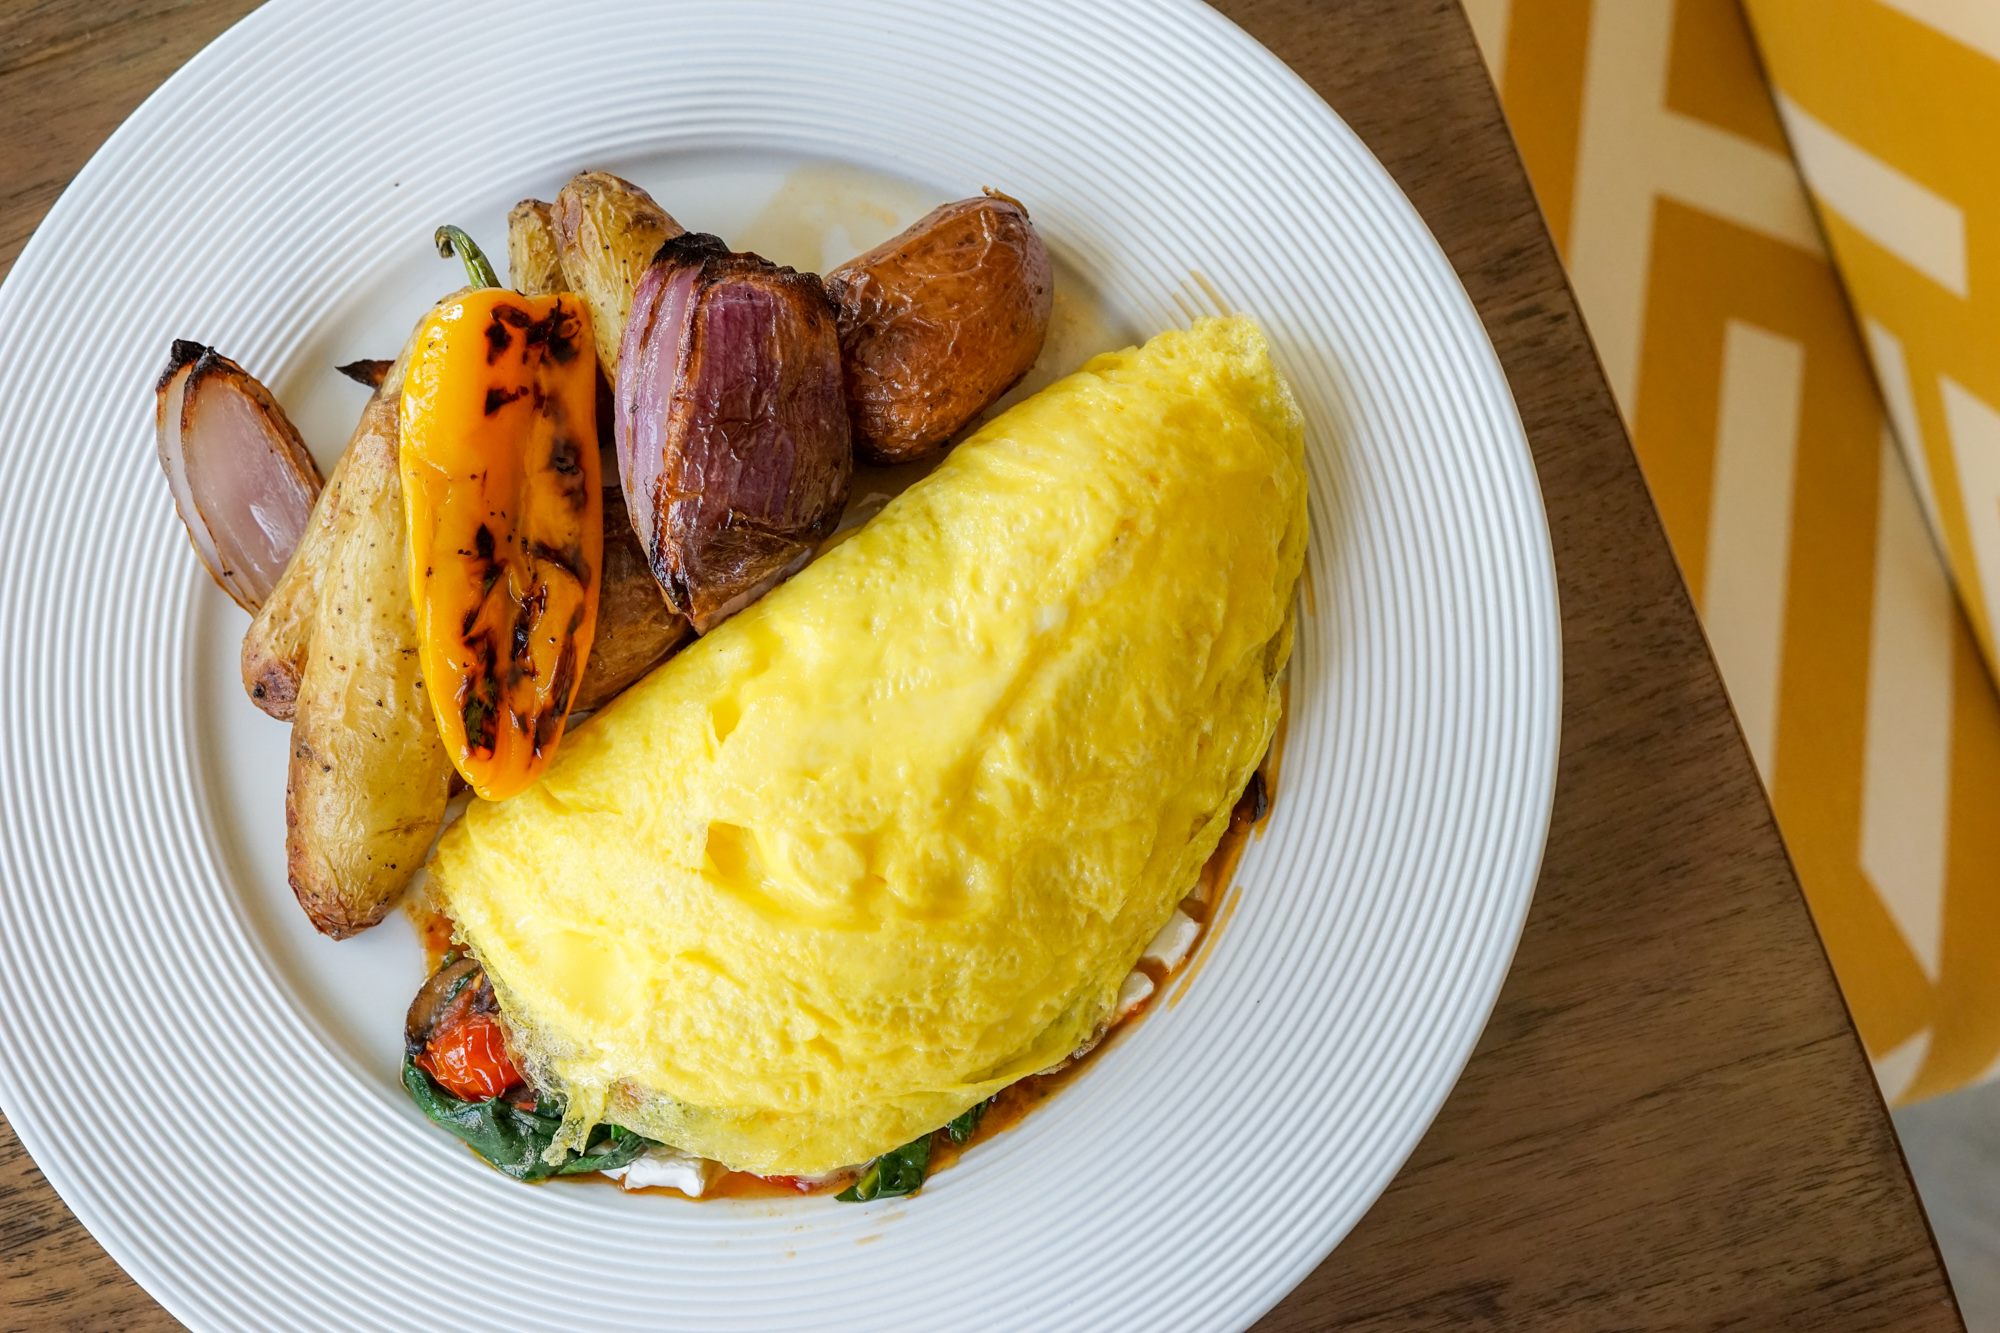 French Brie, Spinach, and Wild Mushroom Omelette,Blonde Restaurant at Inn at the Pier, Pismo Beach, CA